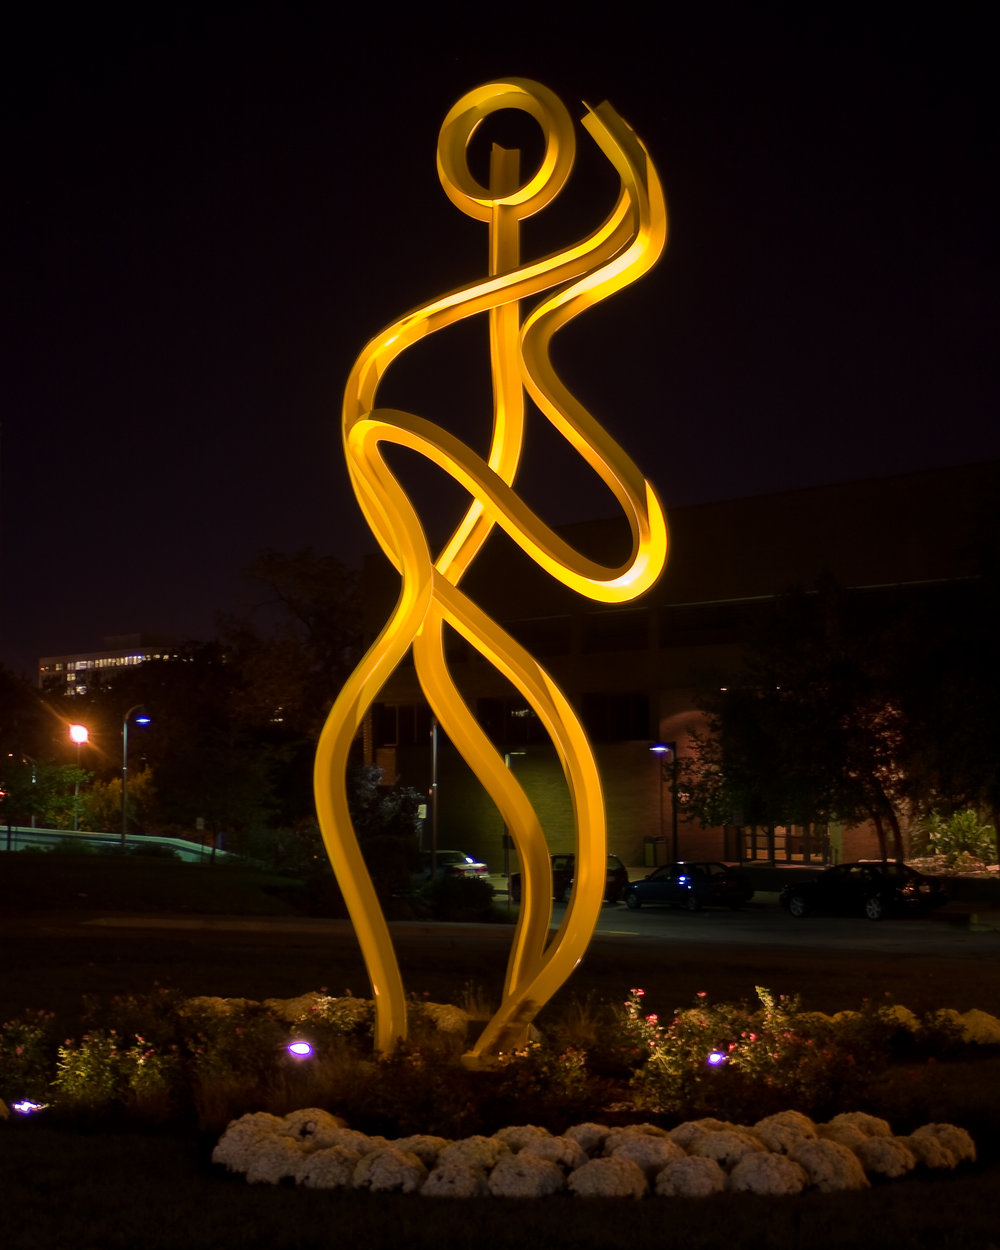 Dancing  1980, painted steel, 26ft x 10ft x 5in  Installed in 2008 at the Performing Arts Center at the University of Missouri, Kansas City 4949 Cherry Street, Kansas City, MO